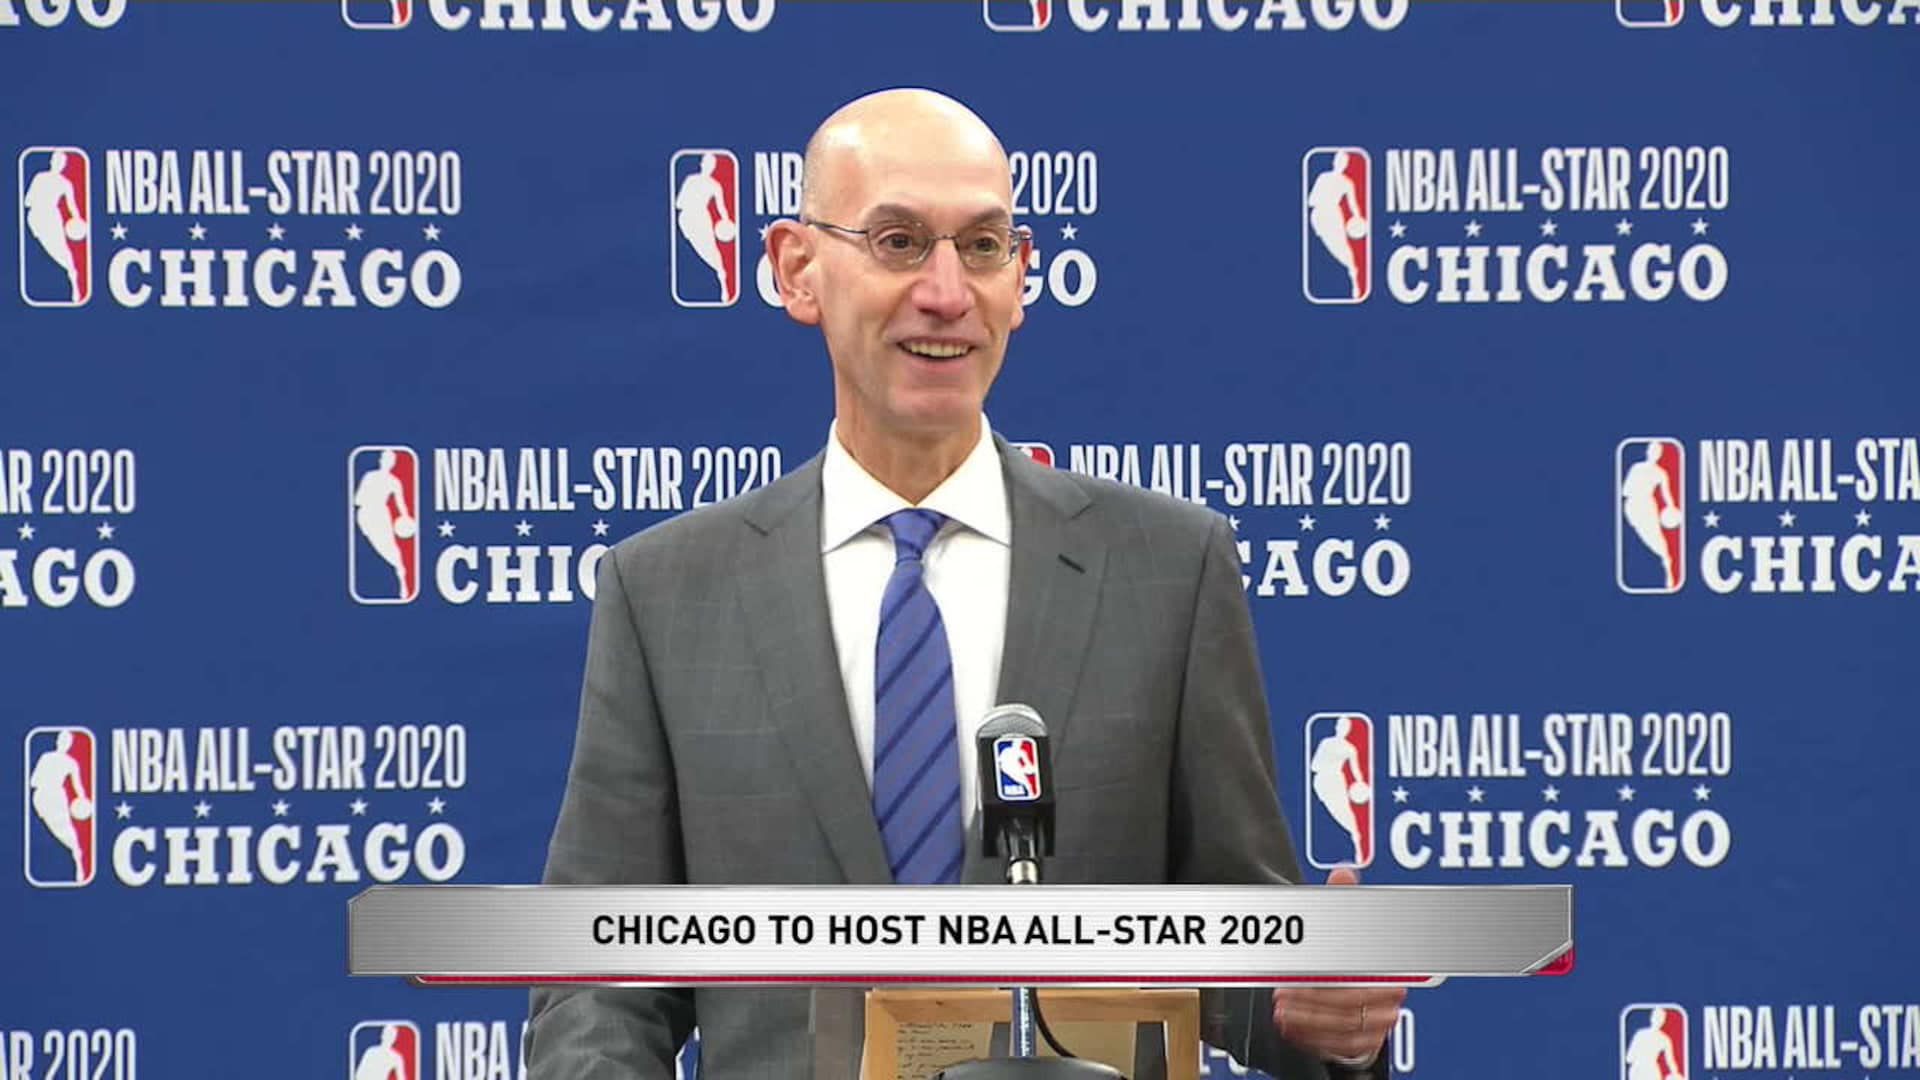 Nba All Star Halftime Show 2020.Nba Selects Chicago To Host All Star 2020 Nba Com